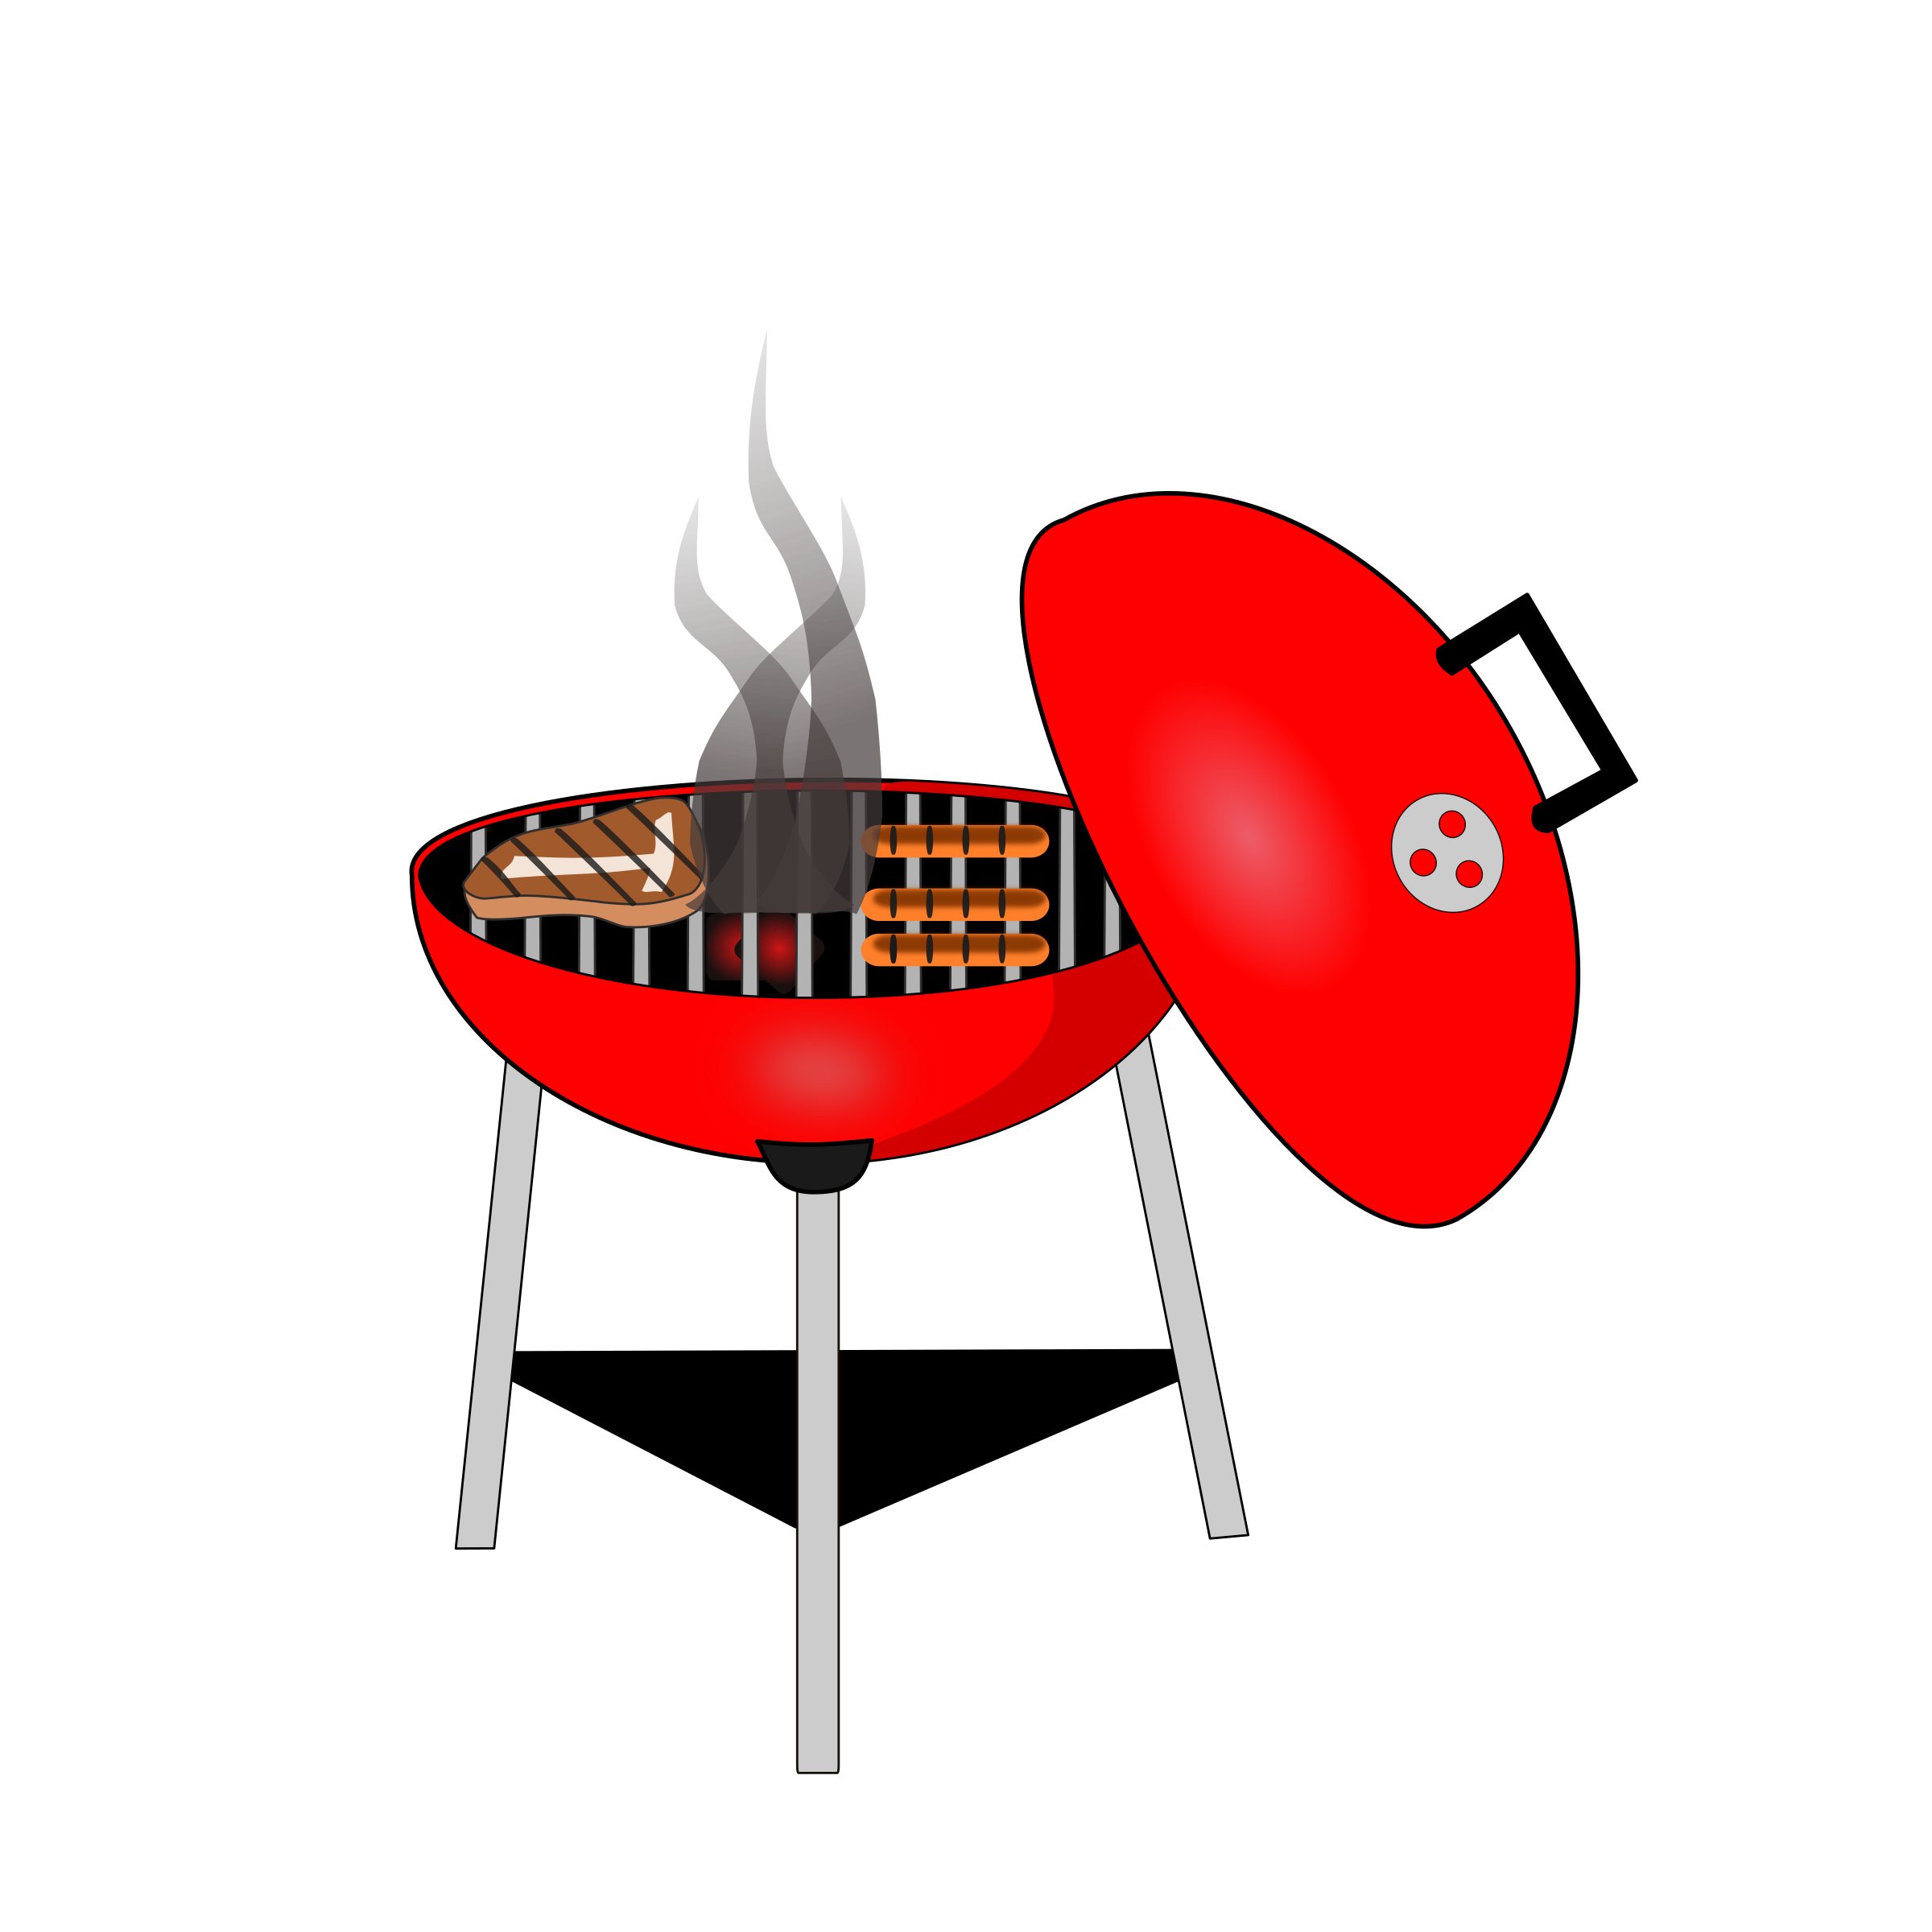 Barbecue PNG Images Transparent Free Download.